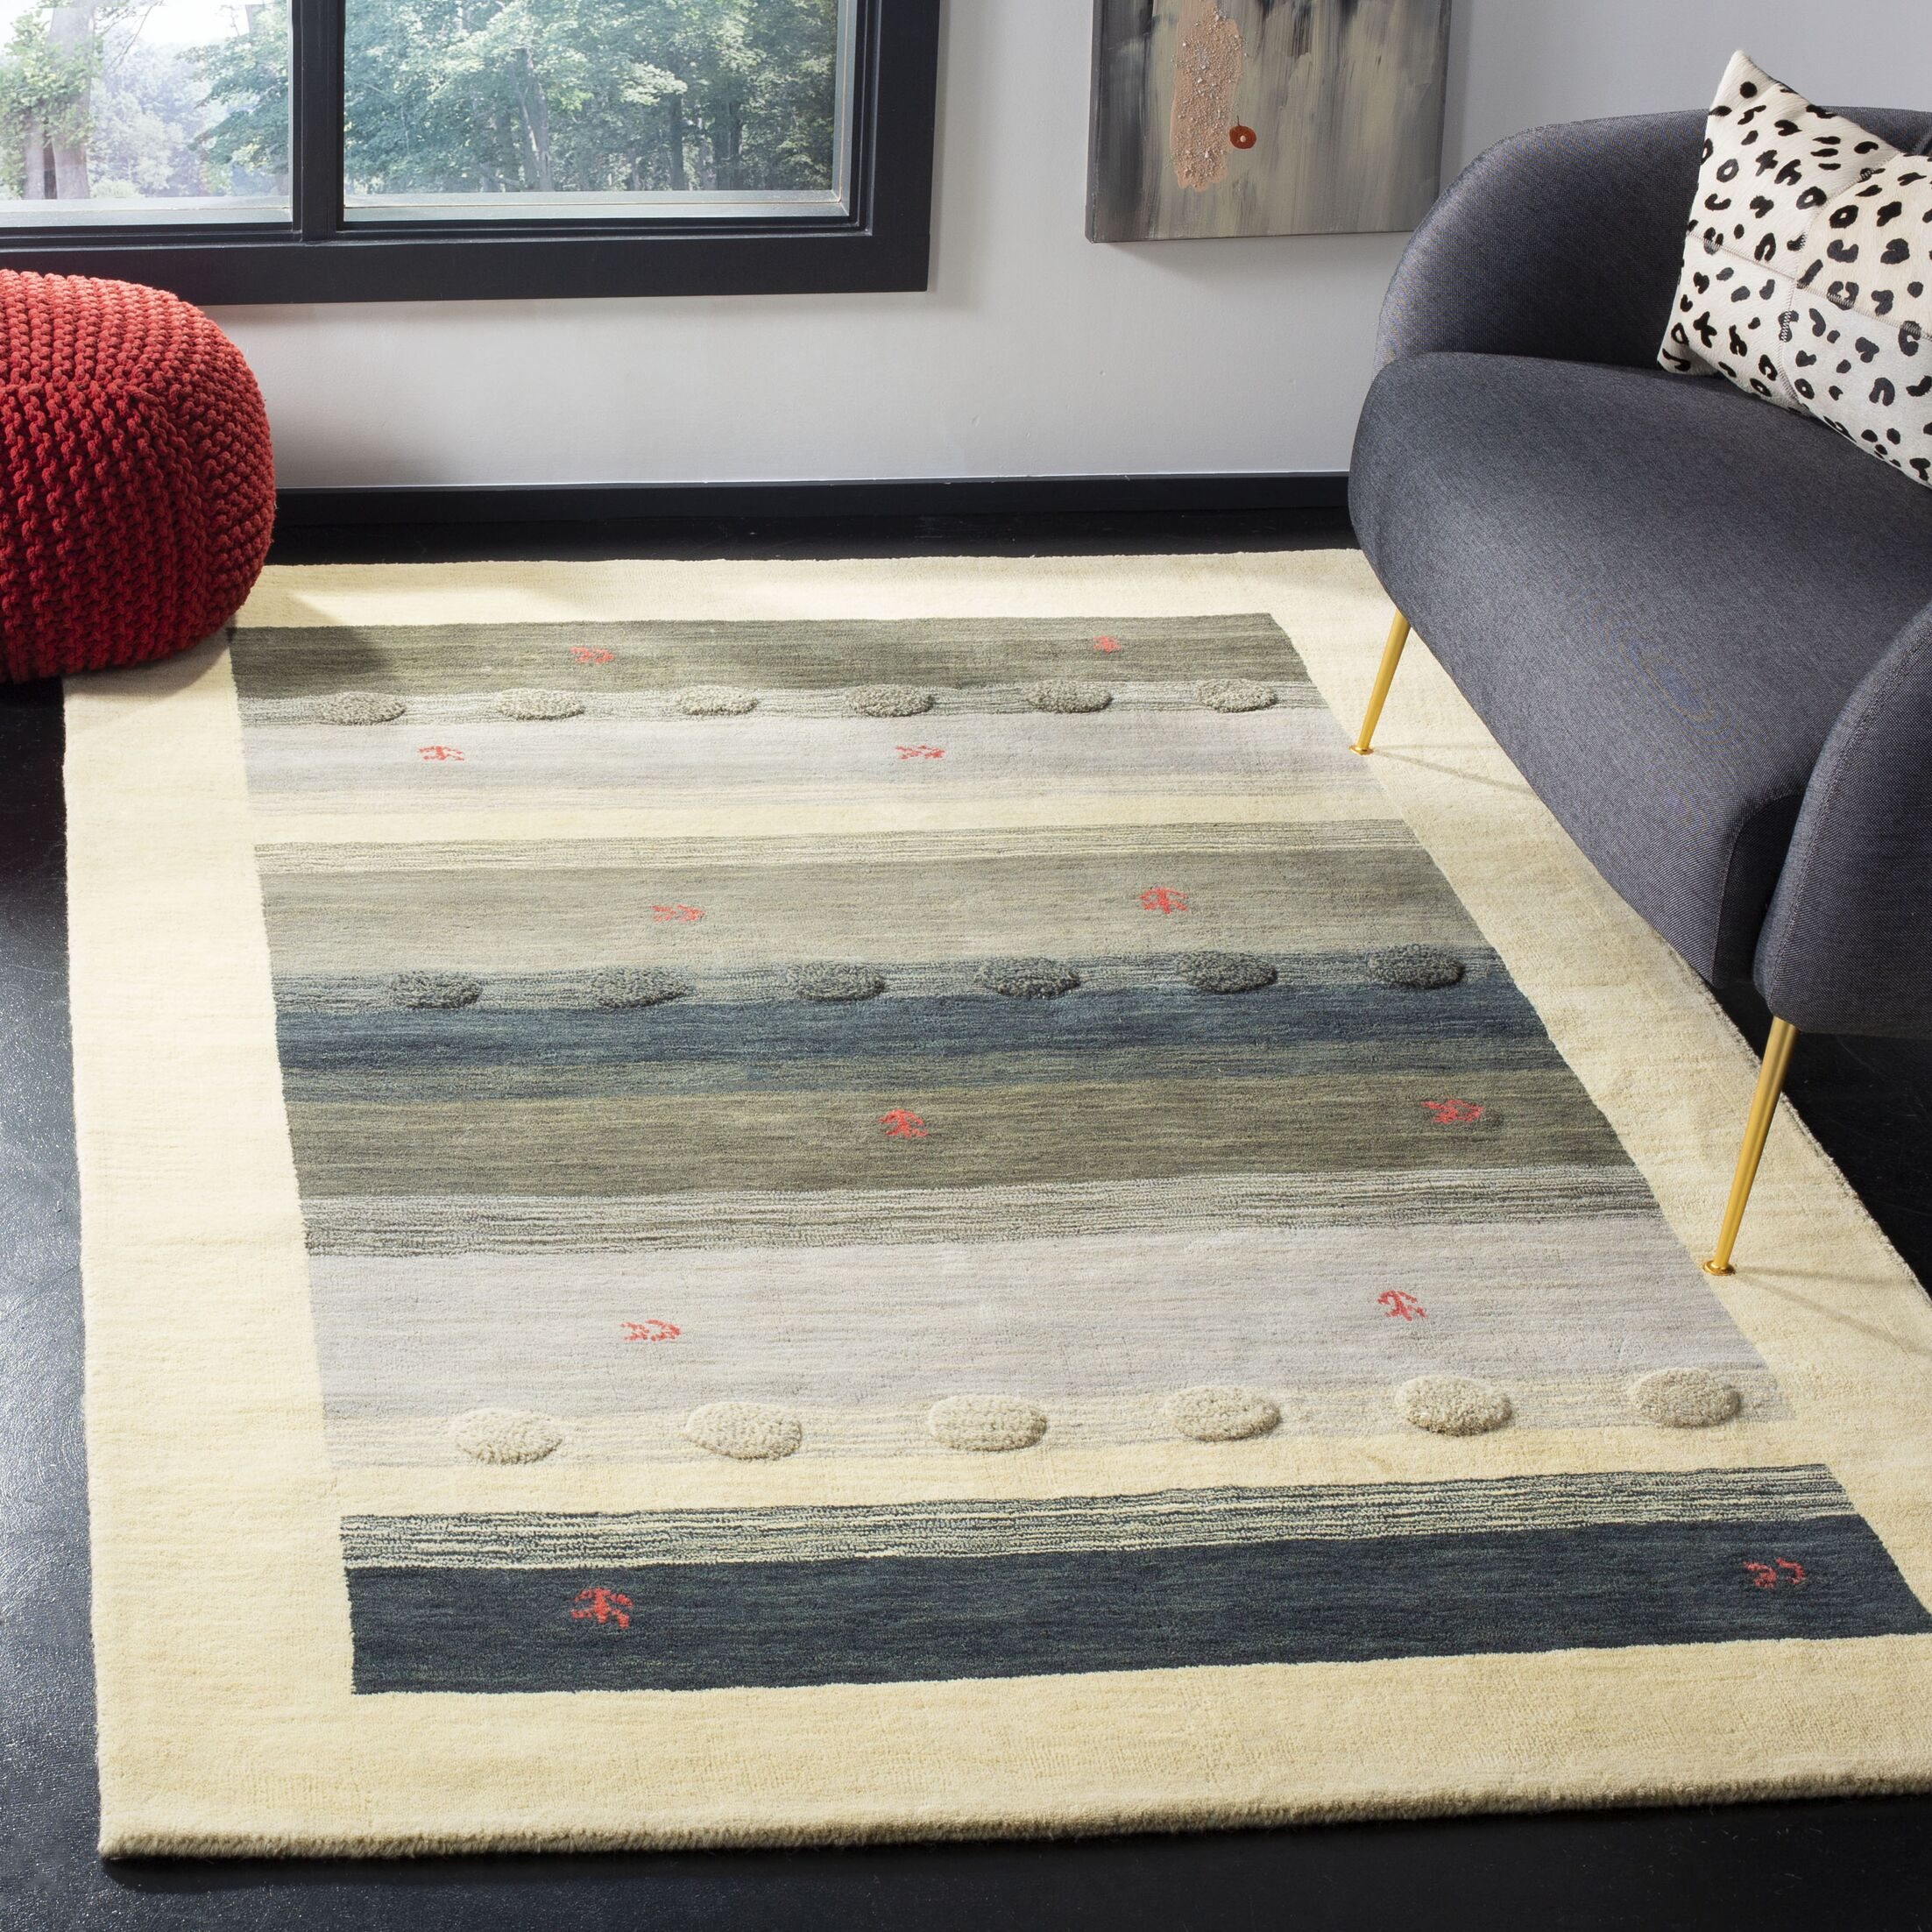 Labbe Hand-Woven Wool Cream/Gray Area Rug Rug Size: Rectangular 5' x 8'